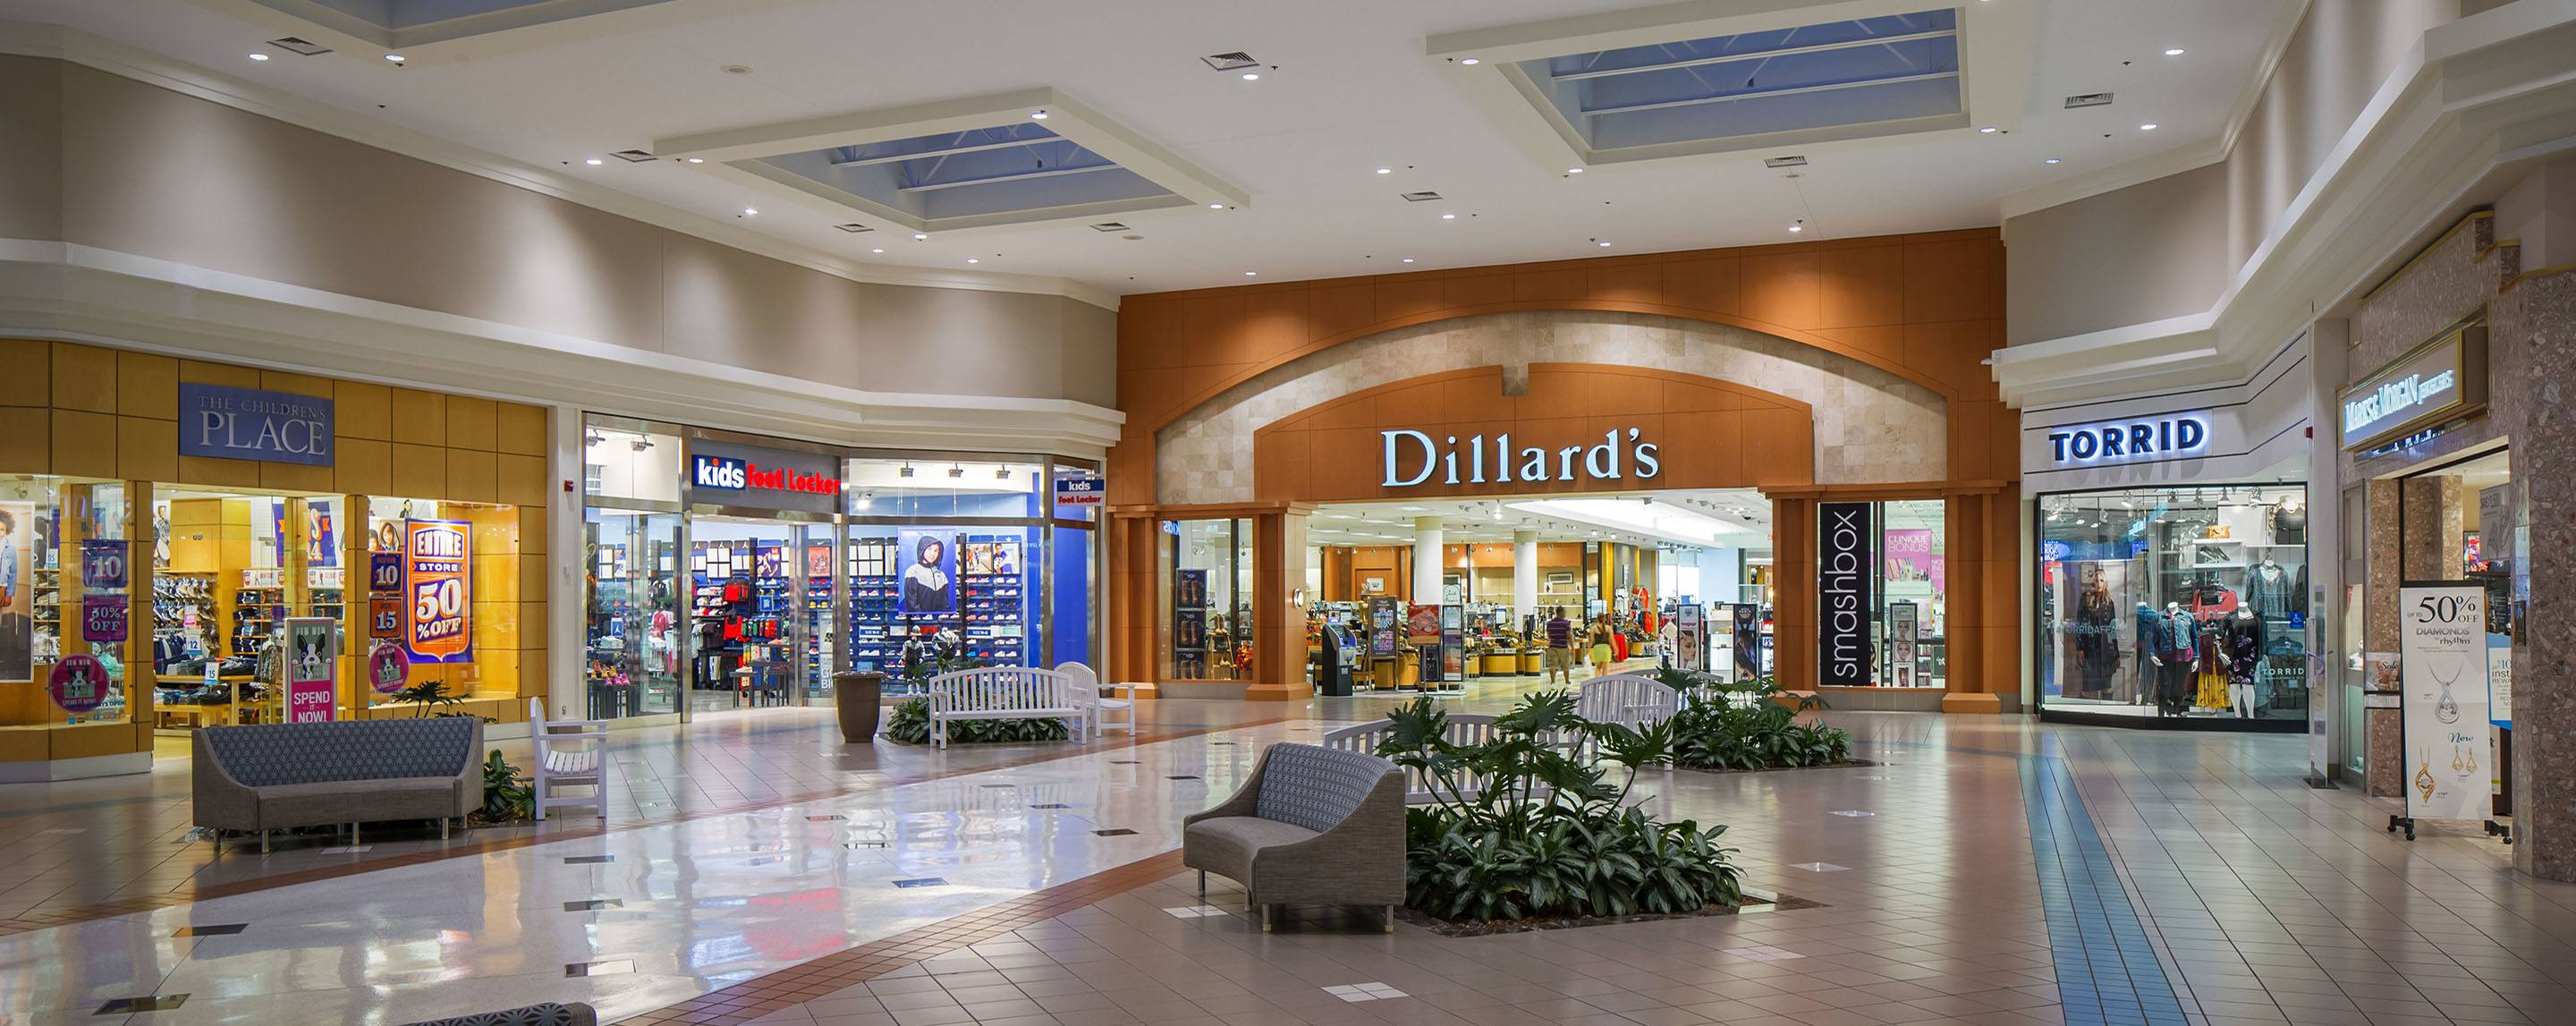 A large indoor mall with a TORRID, Dillard's, and kids foot Locker.